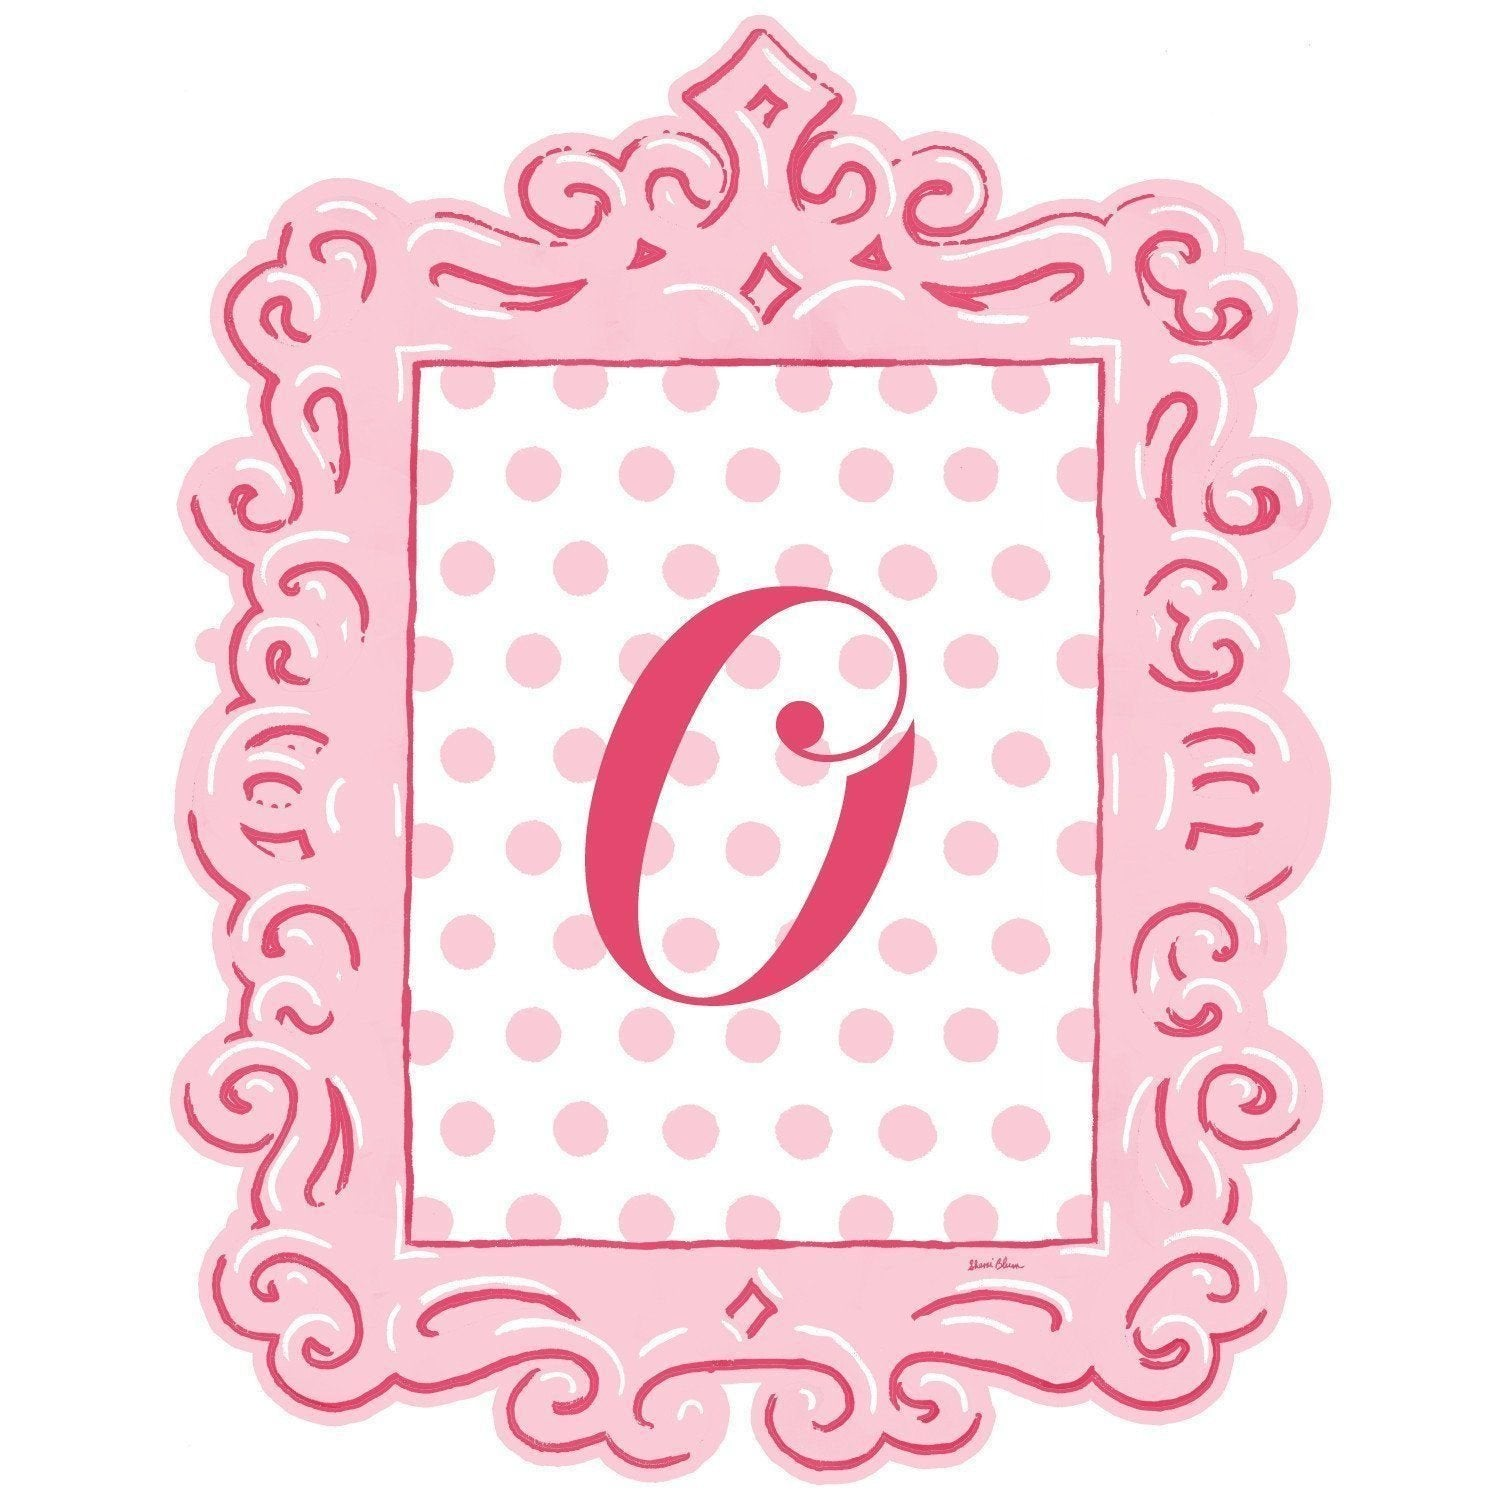 Framed Dotted Monogram Wall Decal in Pink-Decals-Default-Jack and Jill Boutique